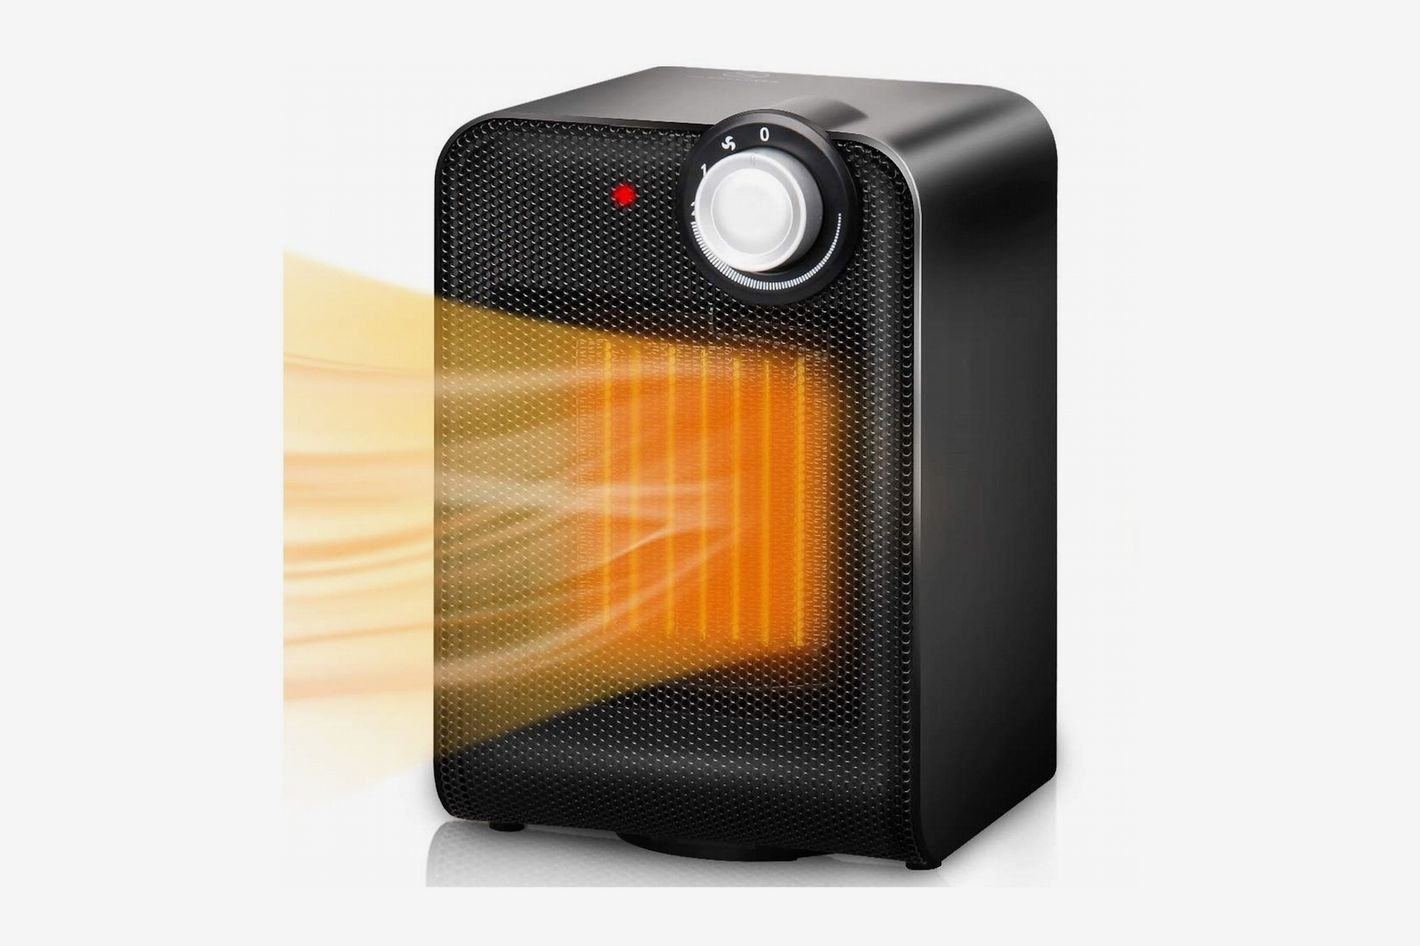 Trustech Electric Space Heater, Portable Ceramic Heater with 1500W